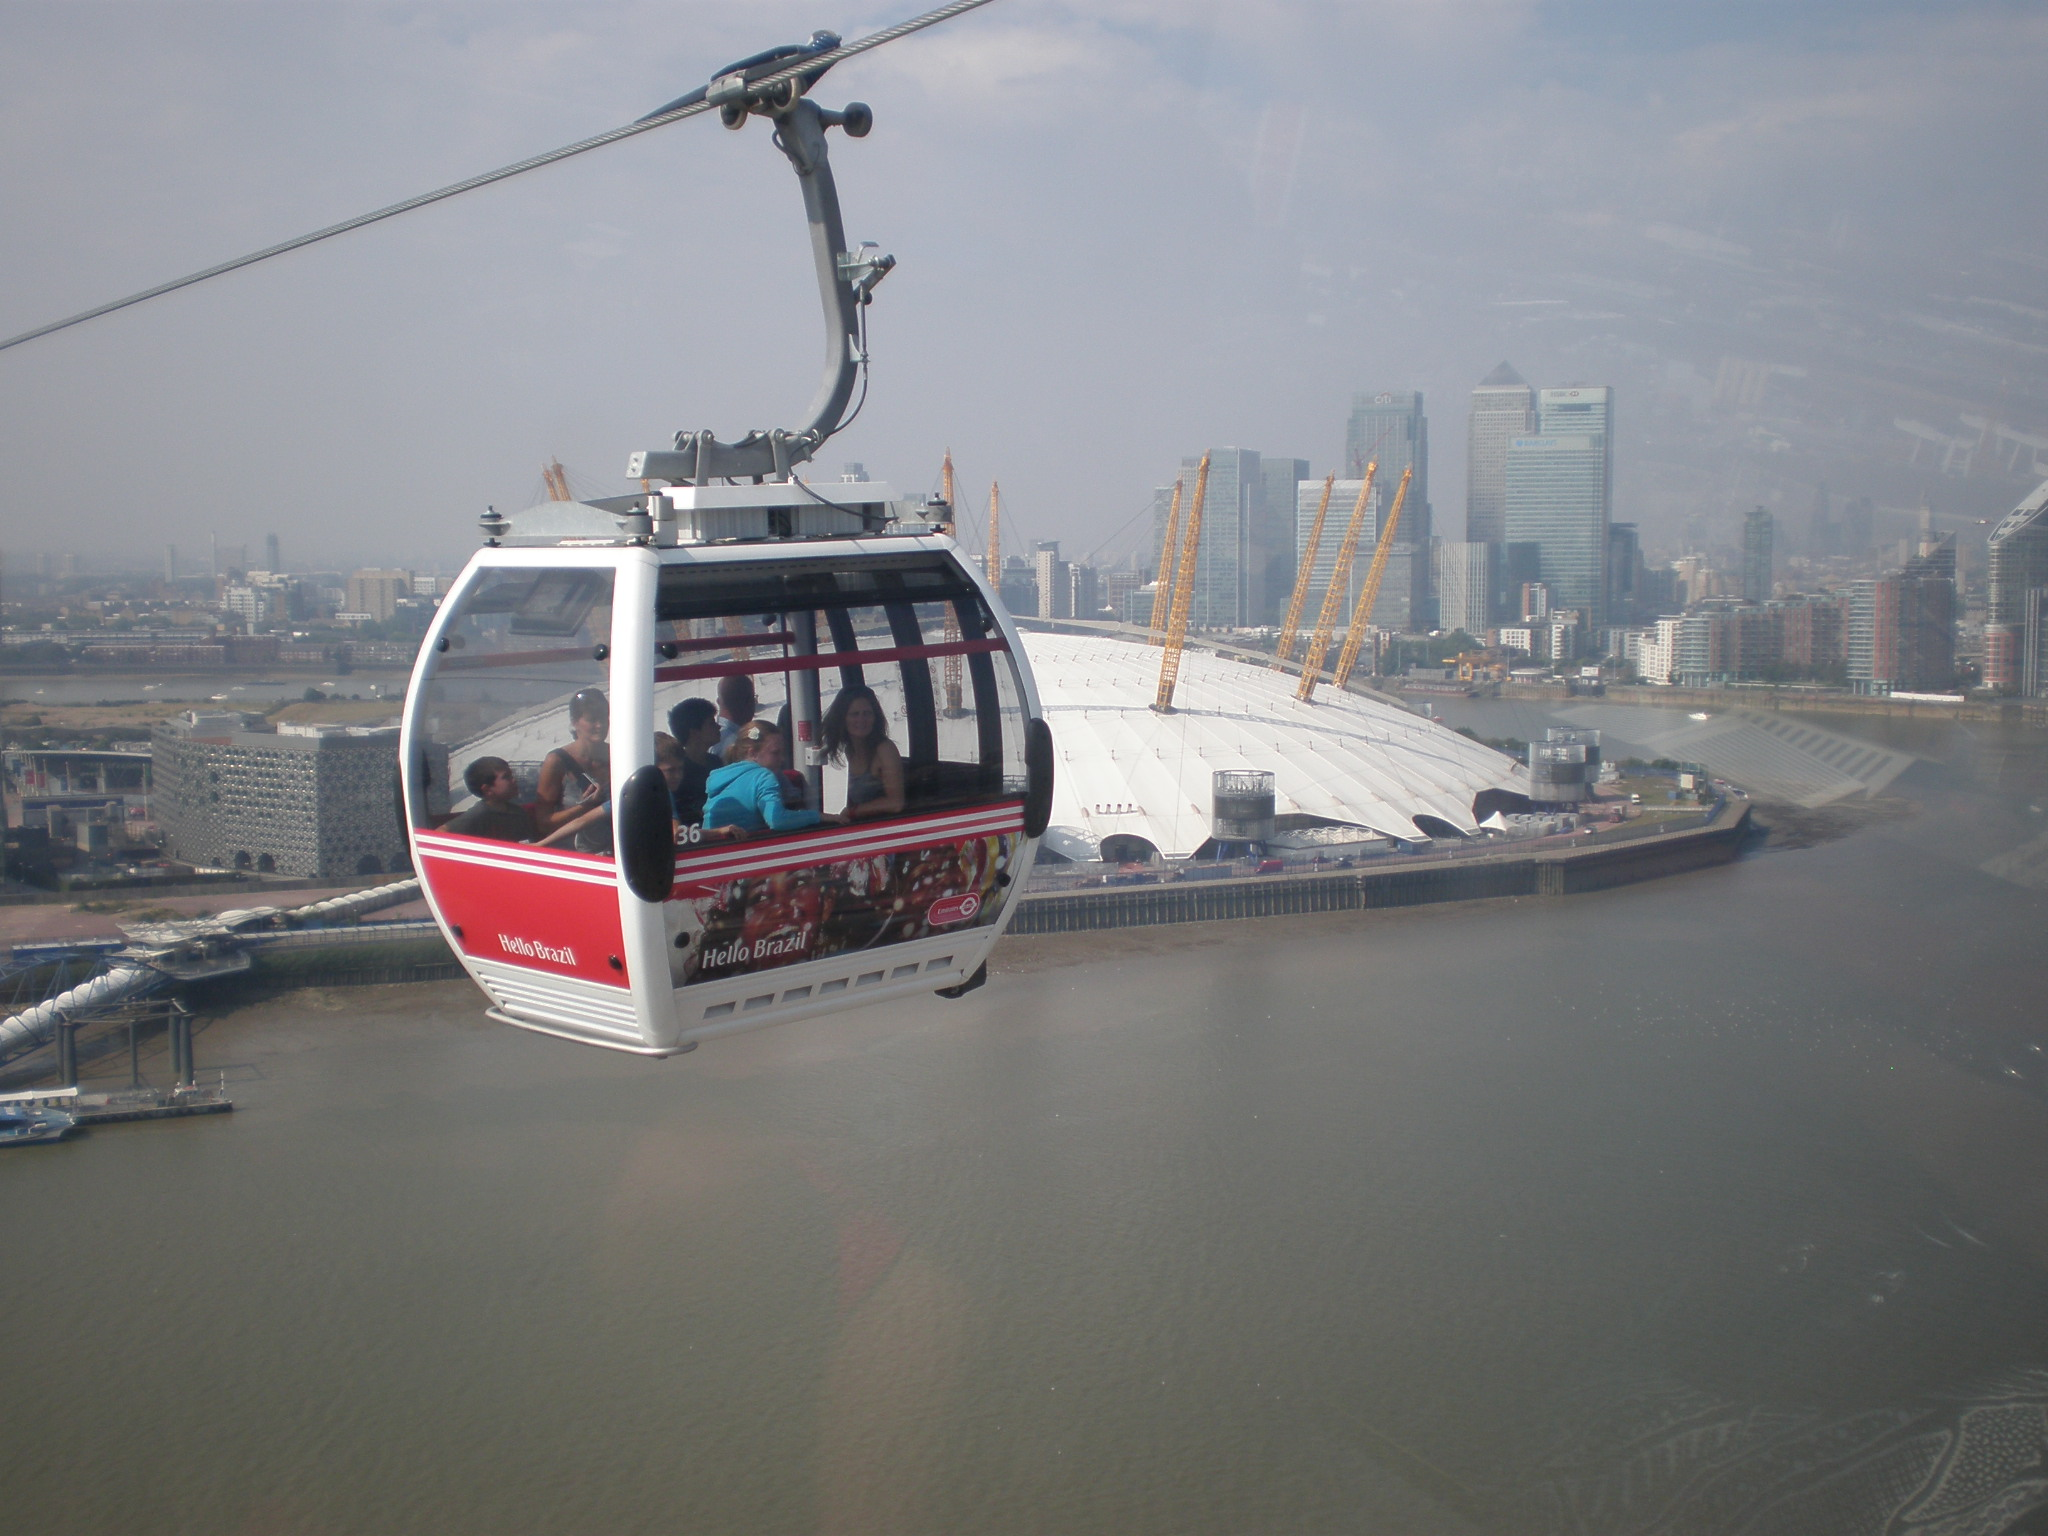 With my best friend on the cable car